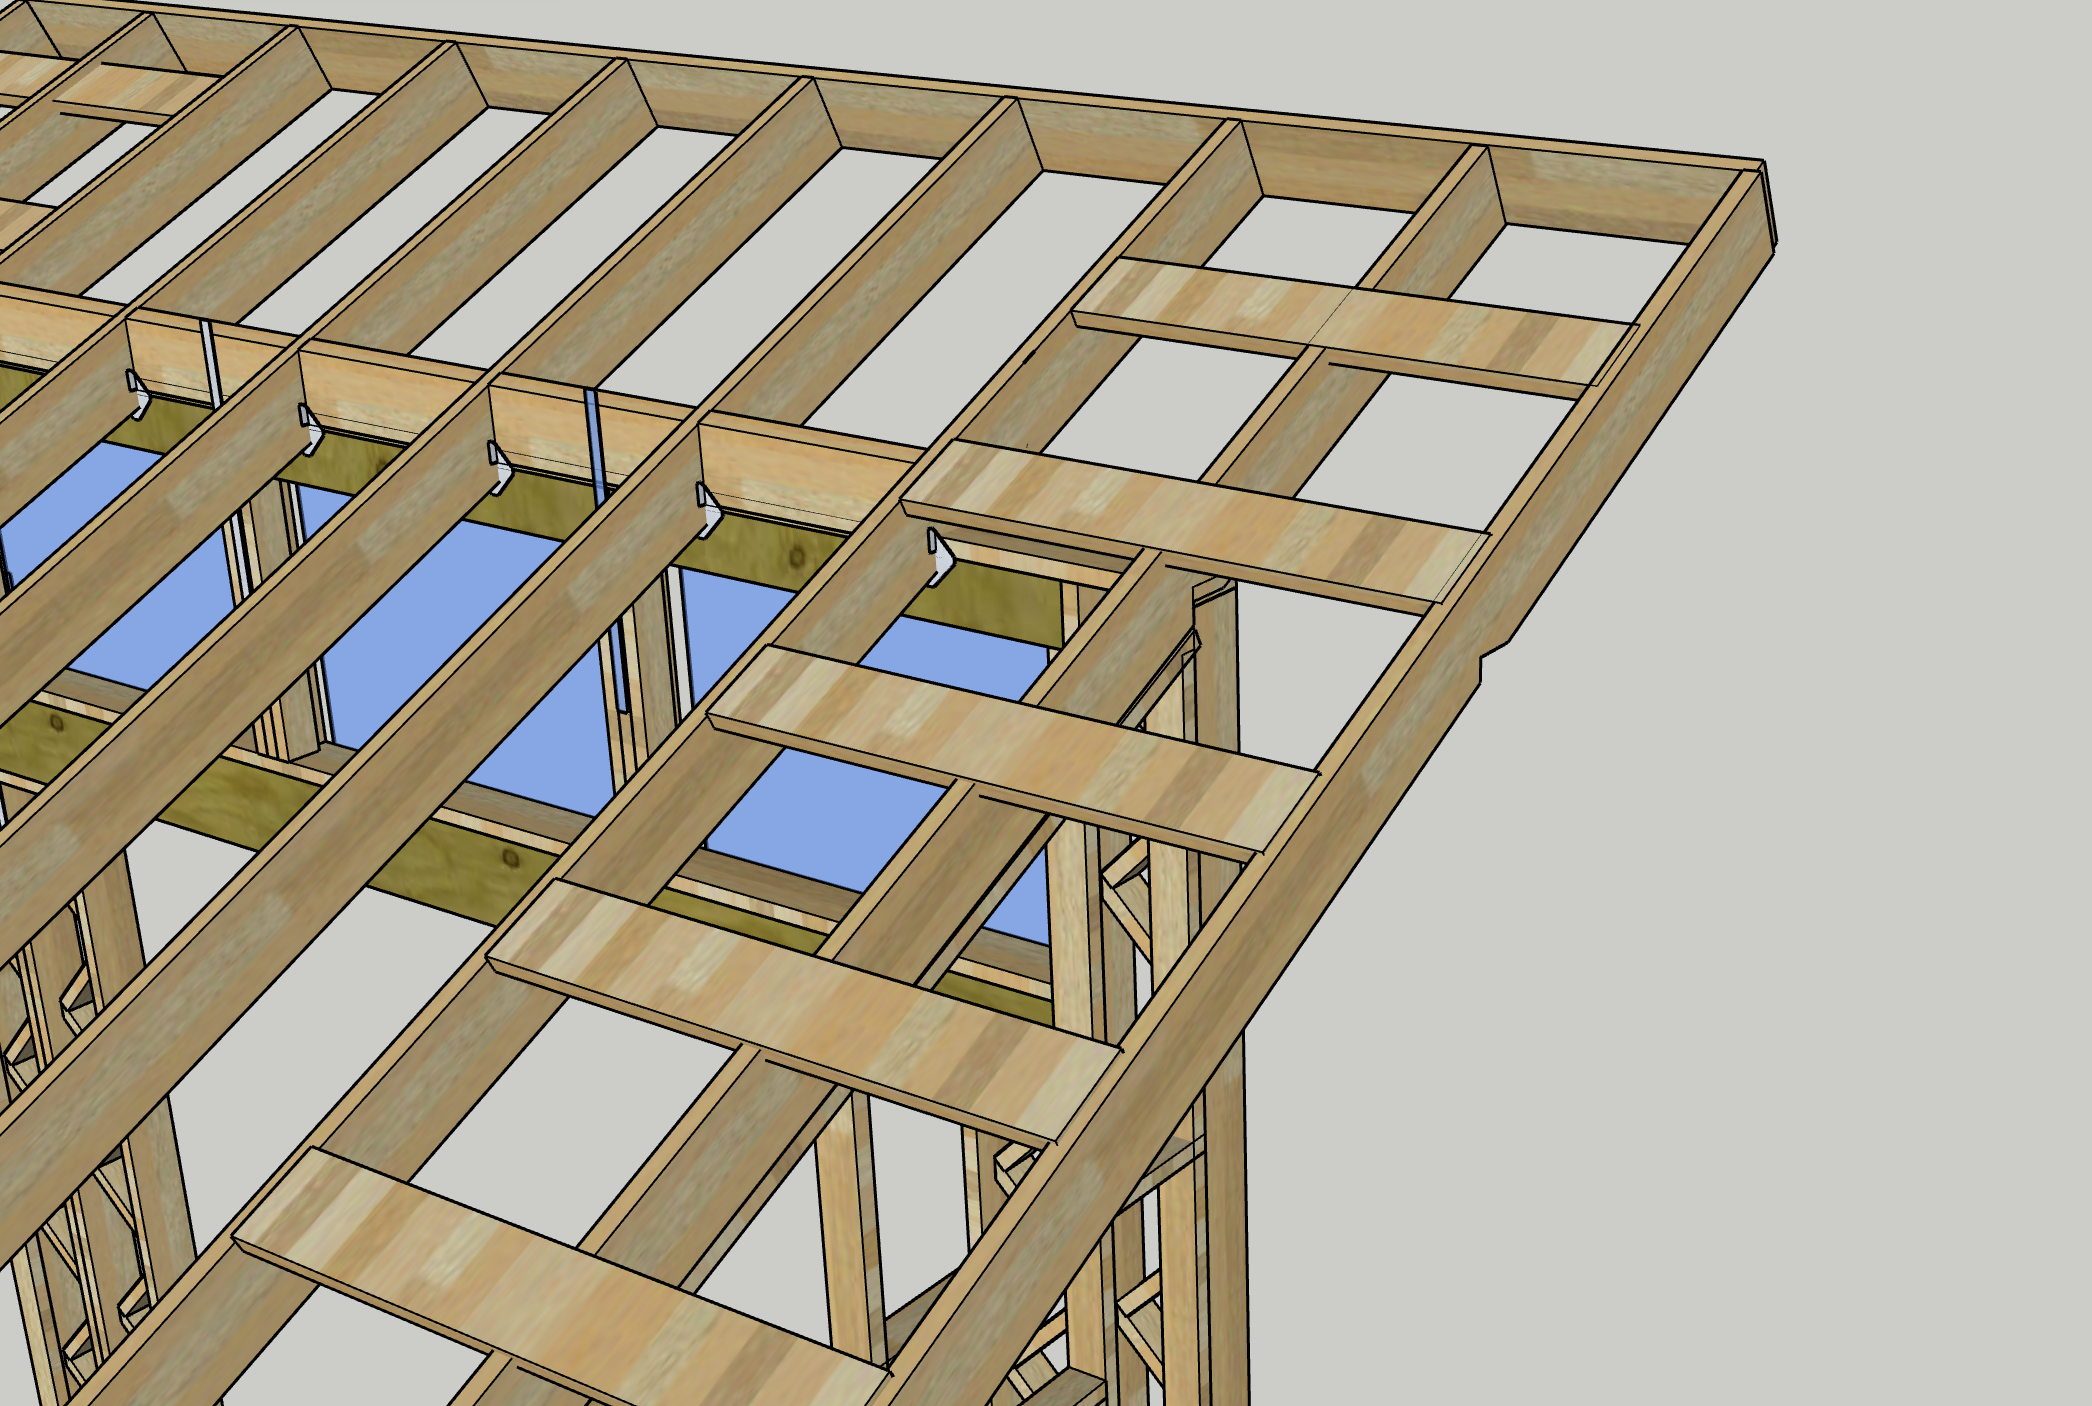 Shed / workshop framing design--is it too ambitious?-screen-shot-2020-04-26-1.06.26-pm.png